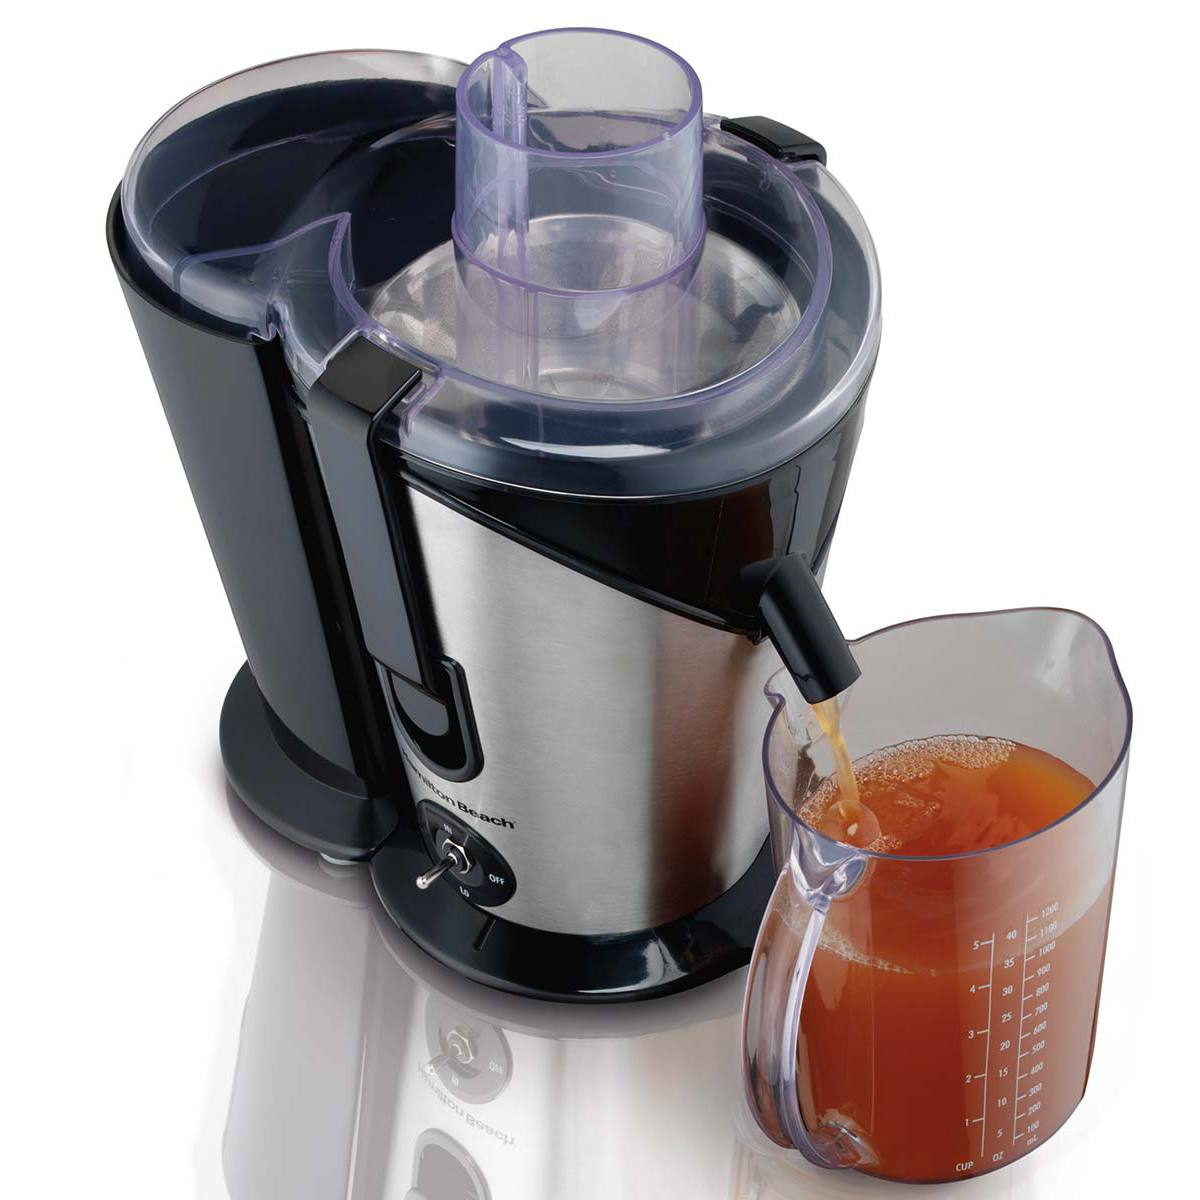 Big Mouth® Plus 2 Speed Juicer (67750)